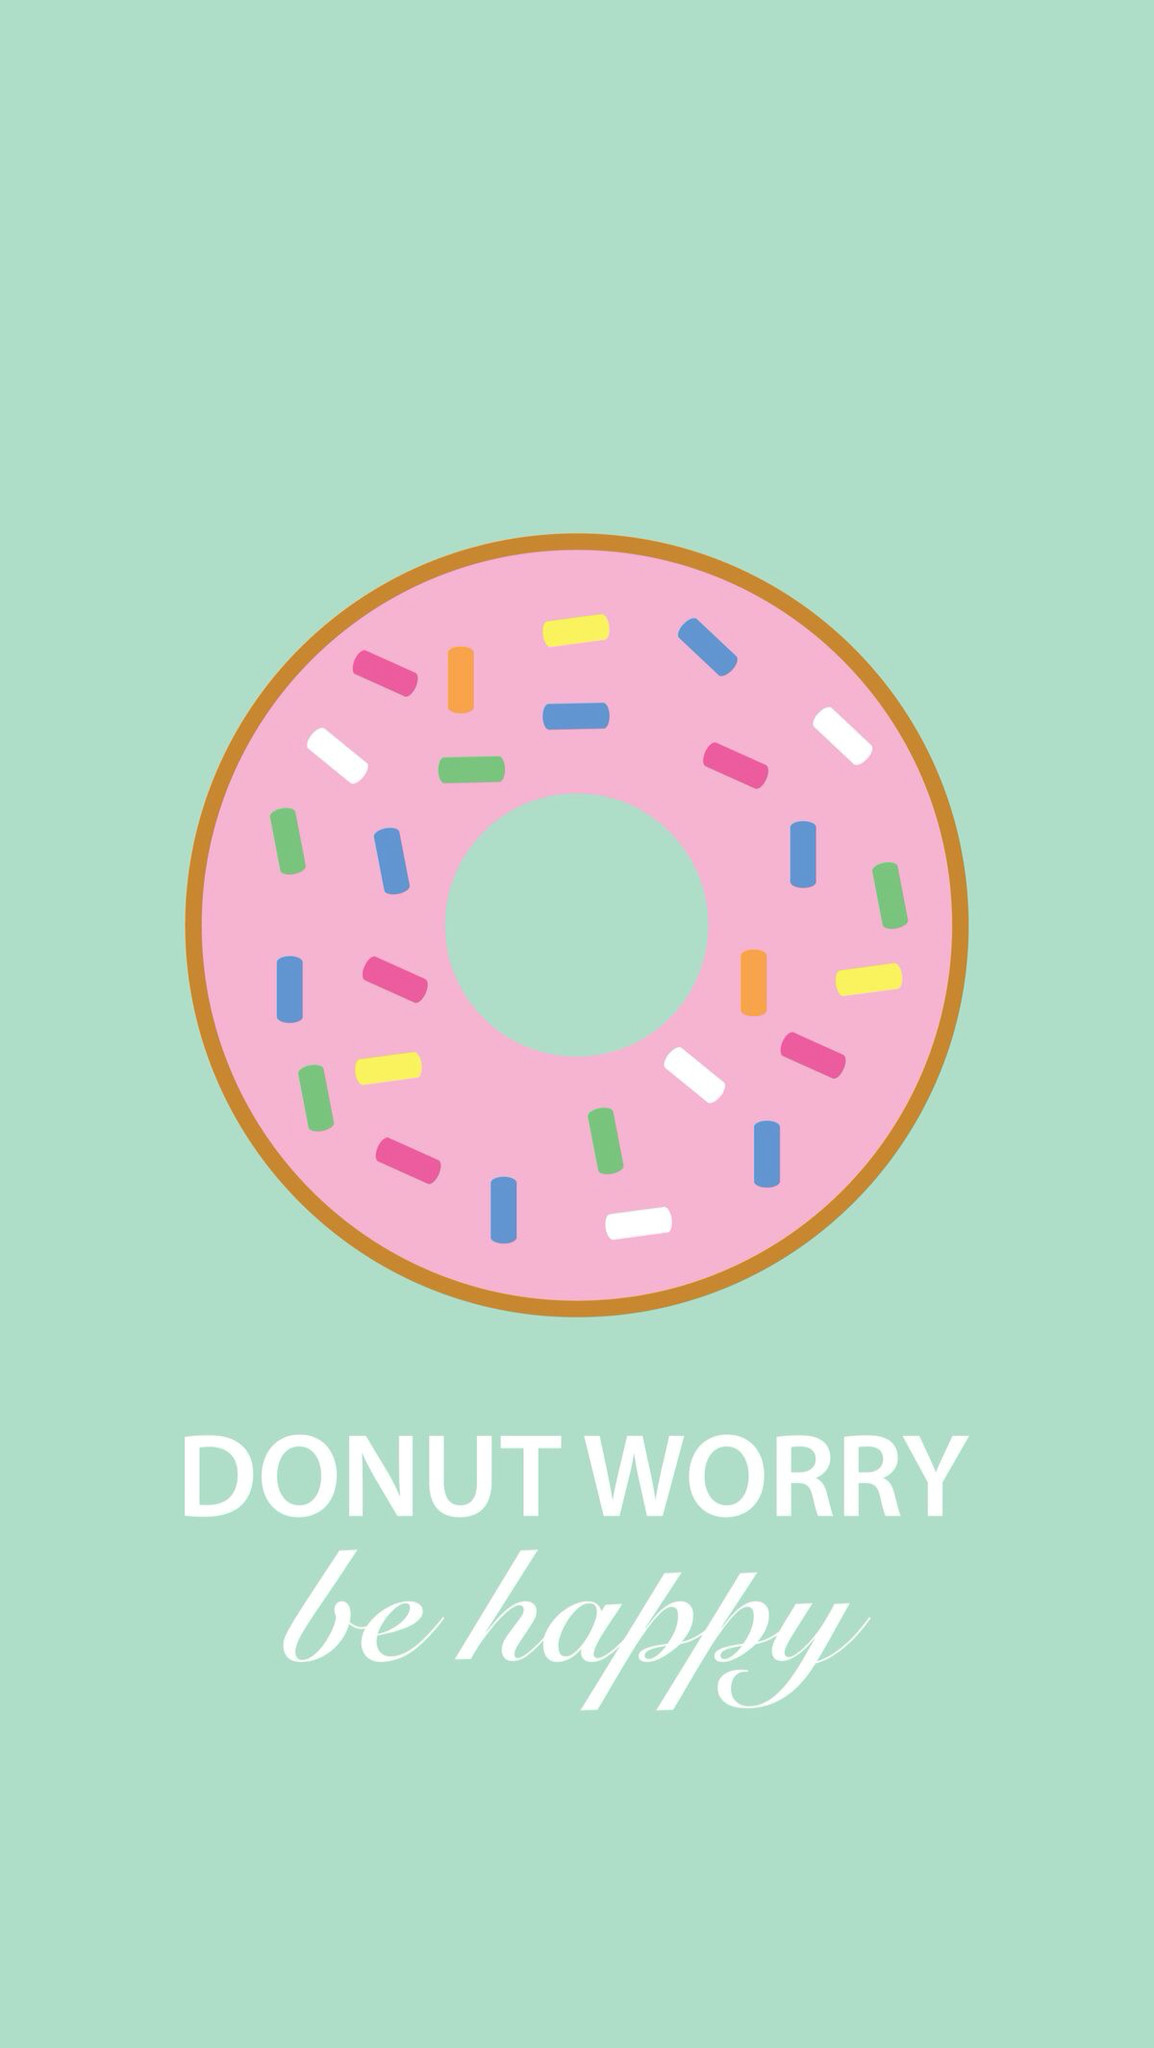 A really cute wallpaper for your iPhone! Comment if you would like me to  post